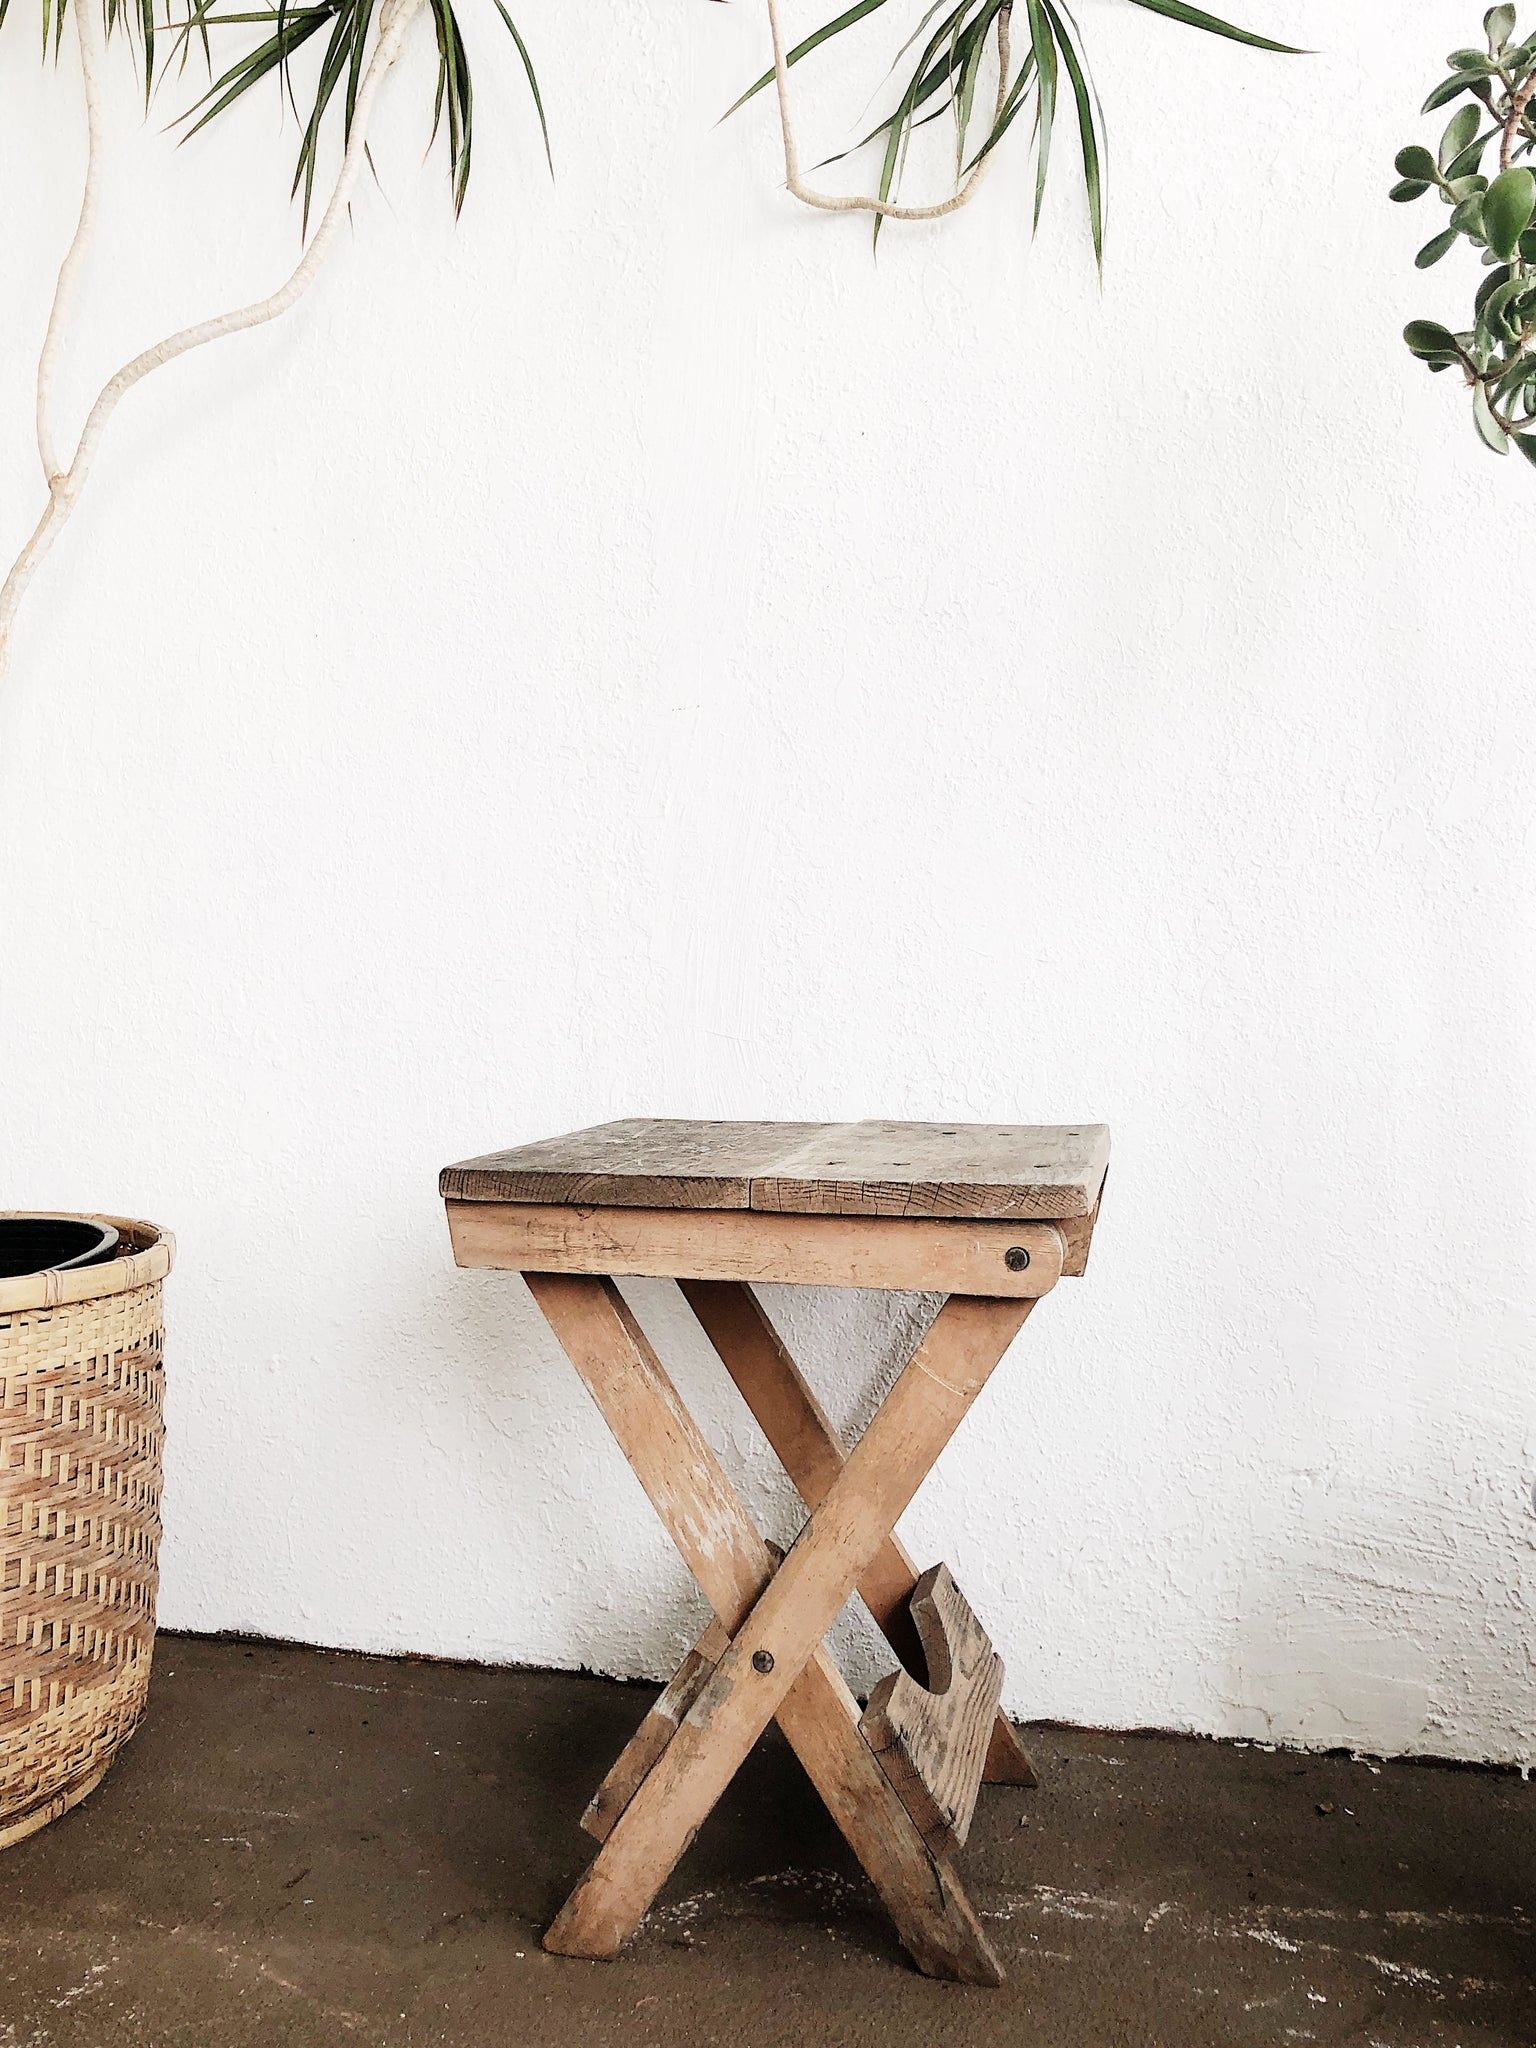 Vintage Rustic Folding Camp Table